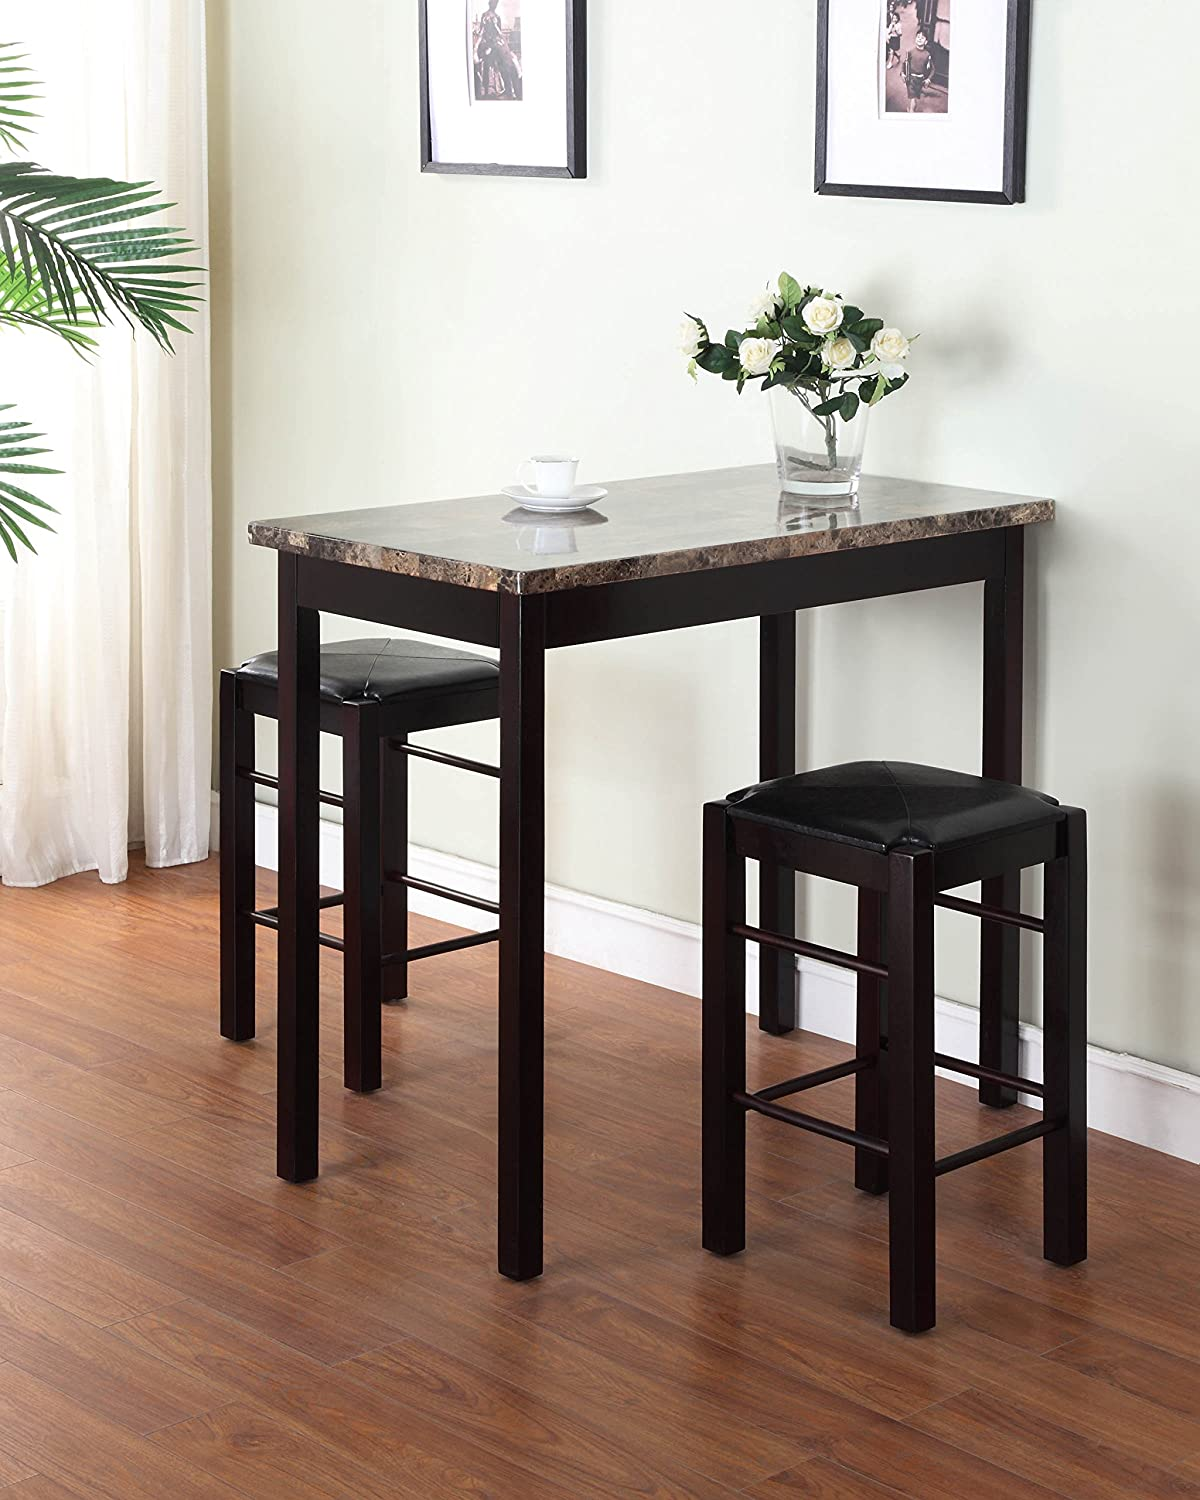 3 piece small kitchen table stools tall set high breakfast pub nook 3 piece small kitchen table stools tall set high breakfast pub nook bar space workwithnaturefo